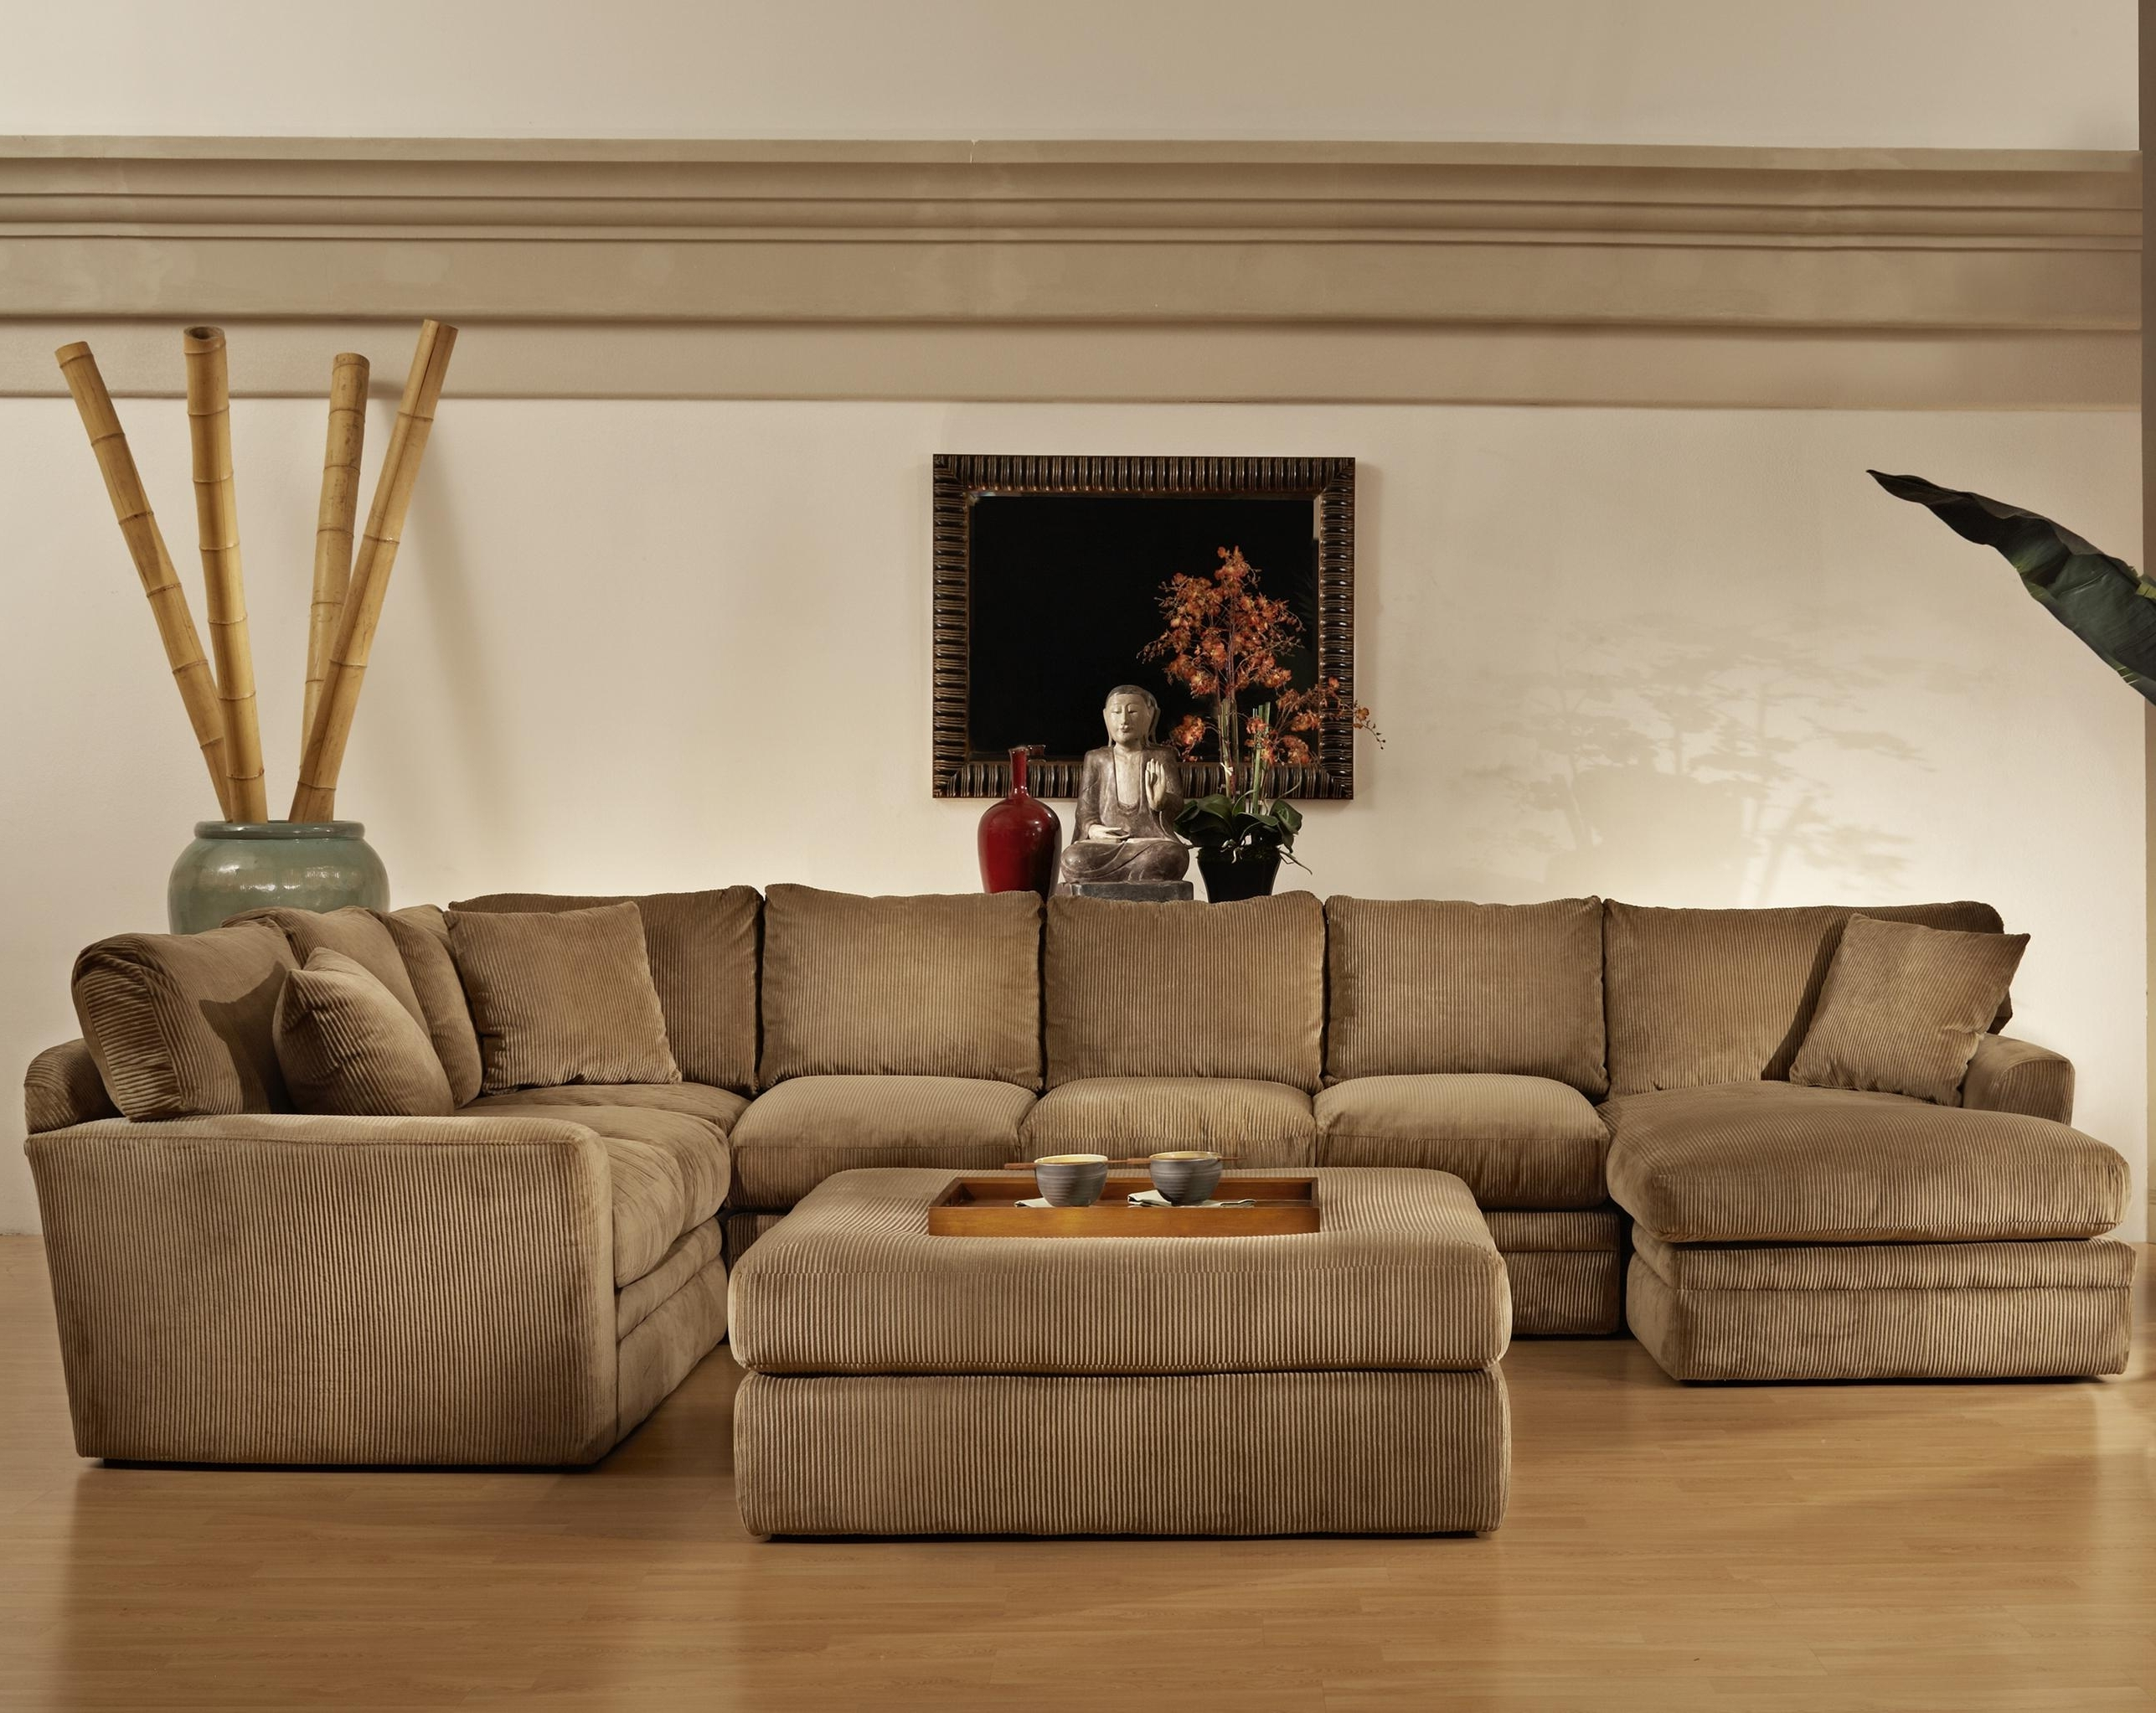 Most Recent Excellent Sectional Sofas With Chaise And Recliner 46 For Your 5 Intended For Sectional Sofas With Chaise And Recliner (View 9 of 15)